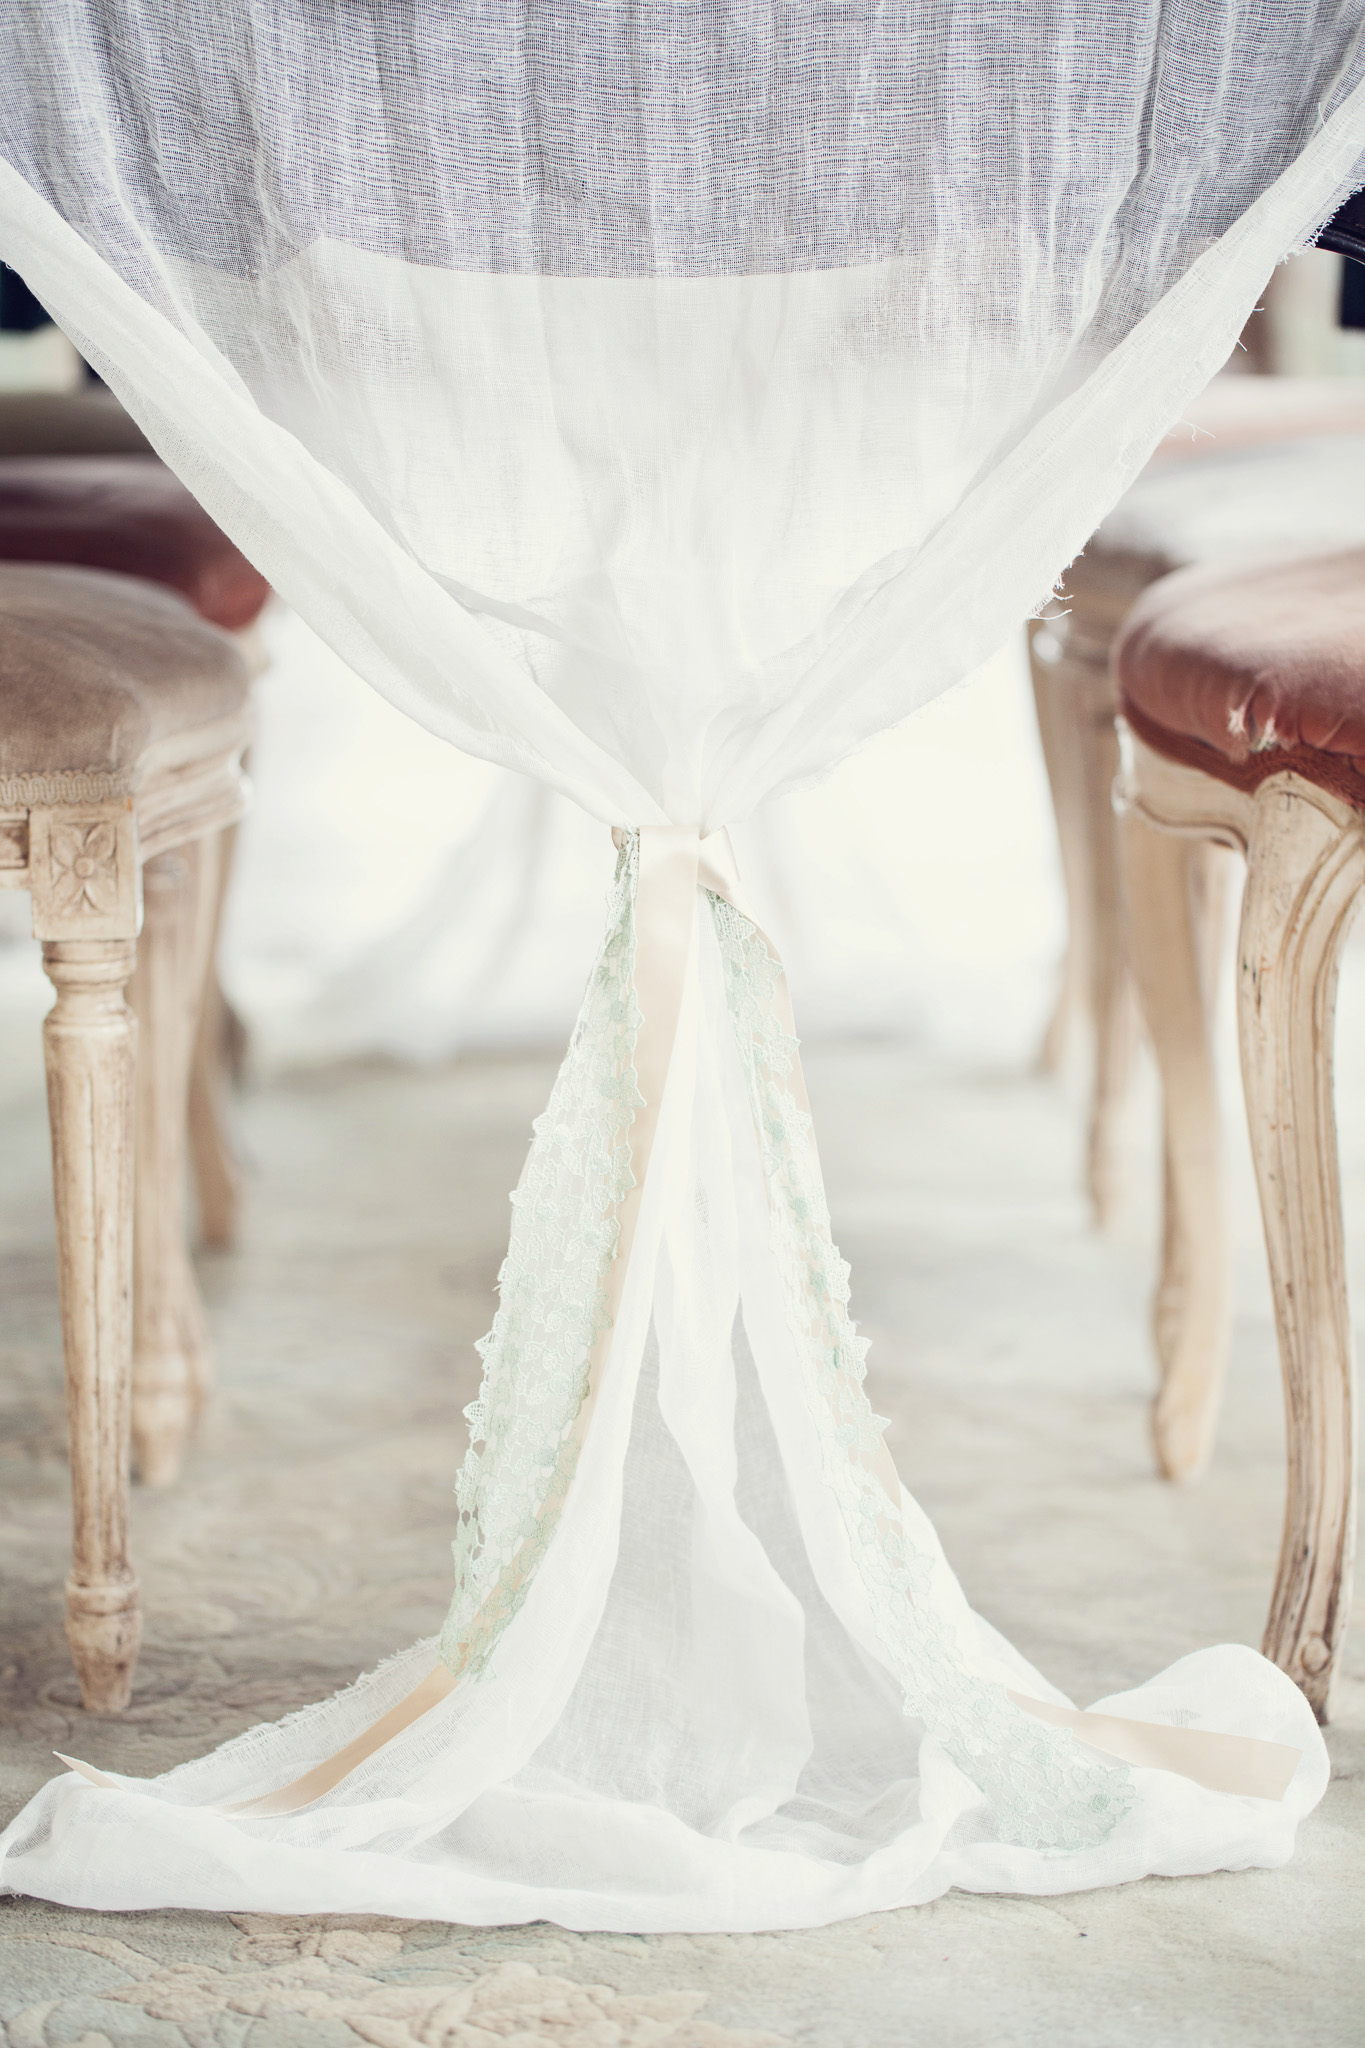 cheesecloth-table-runner-draping-off-table